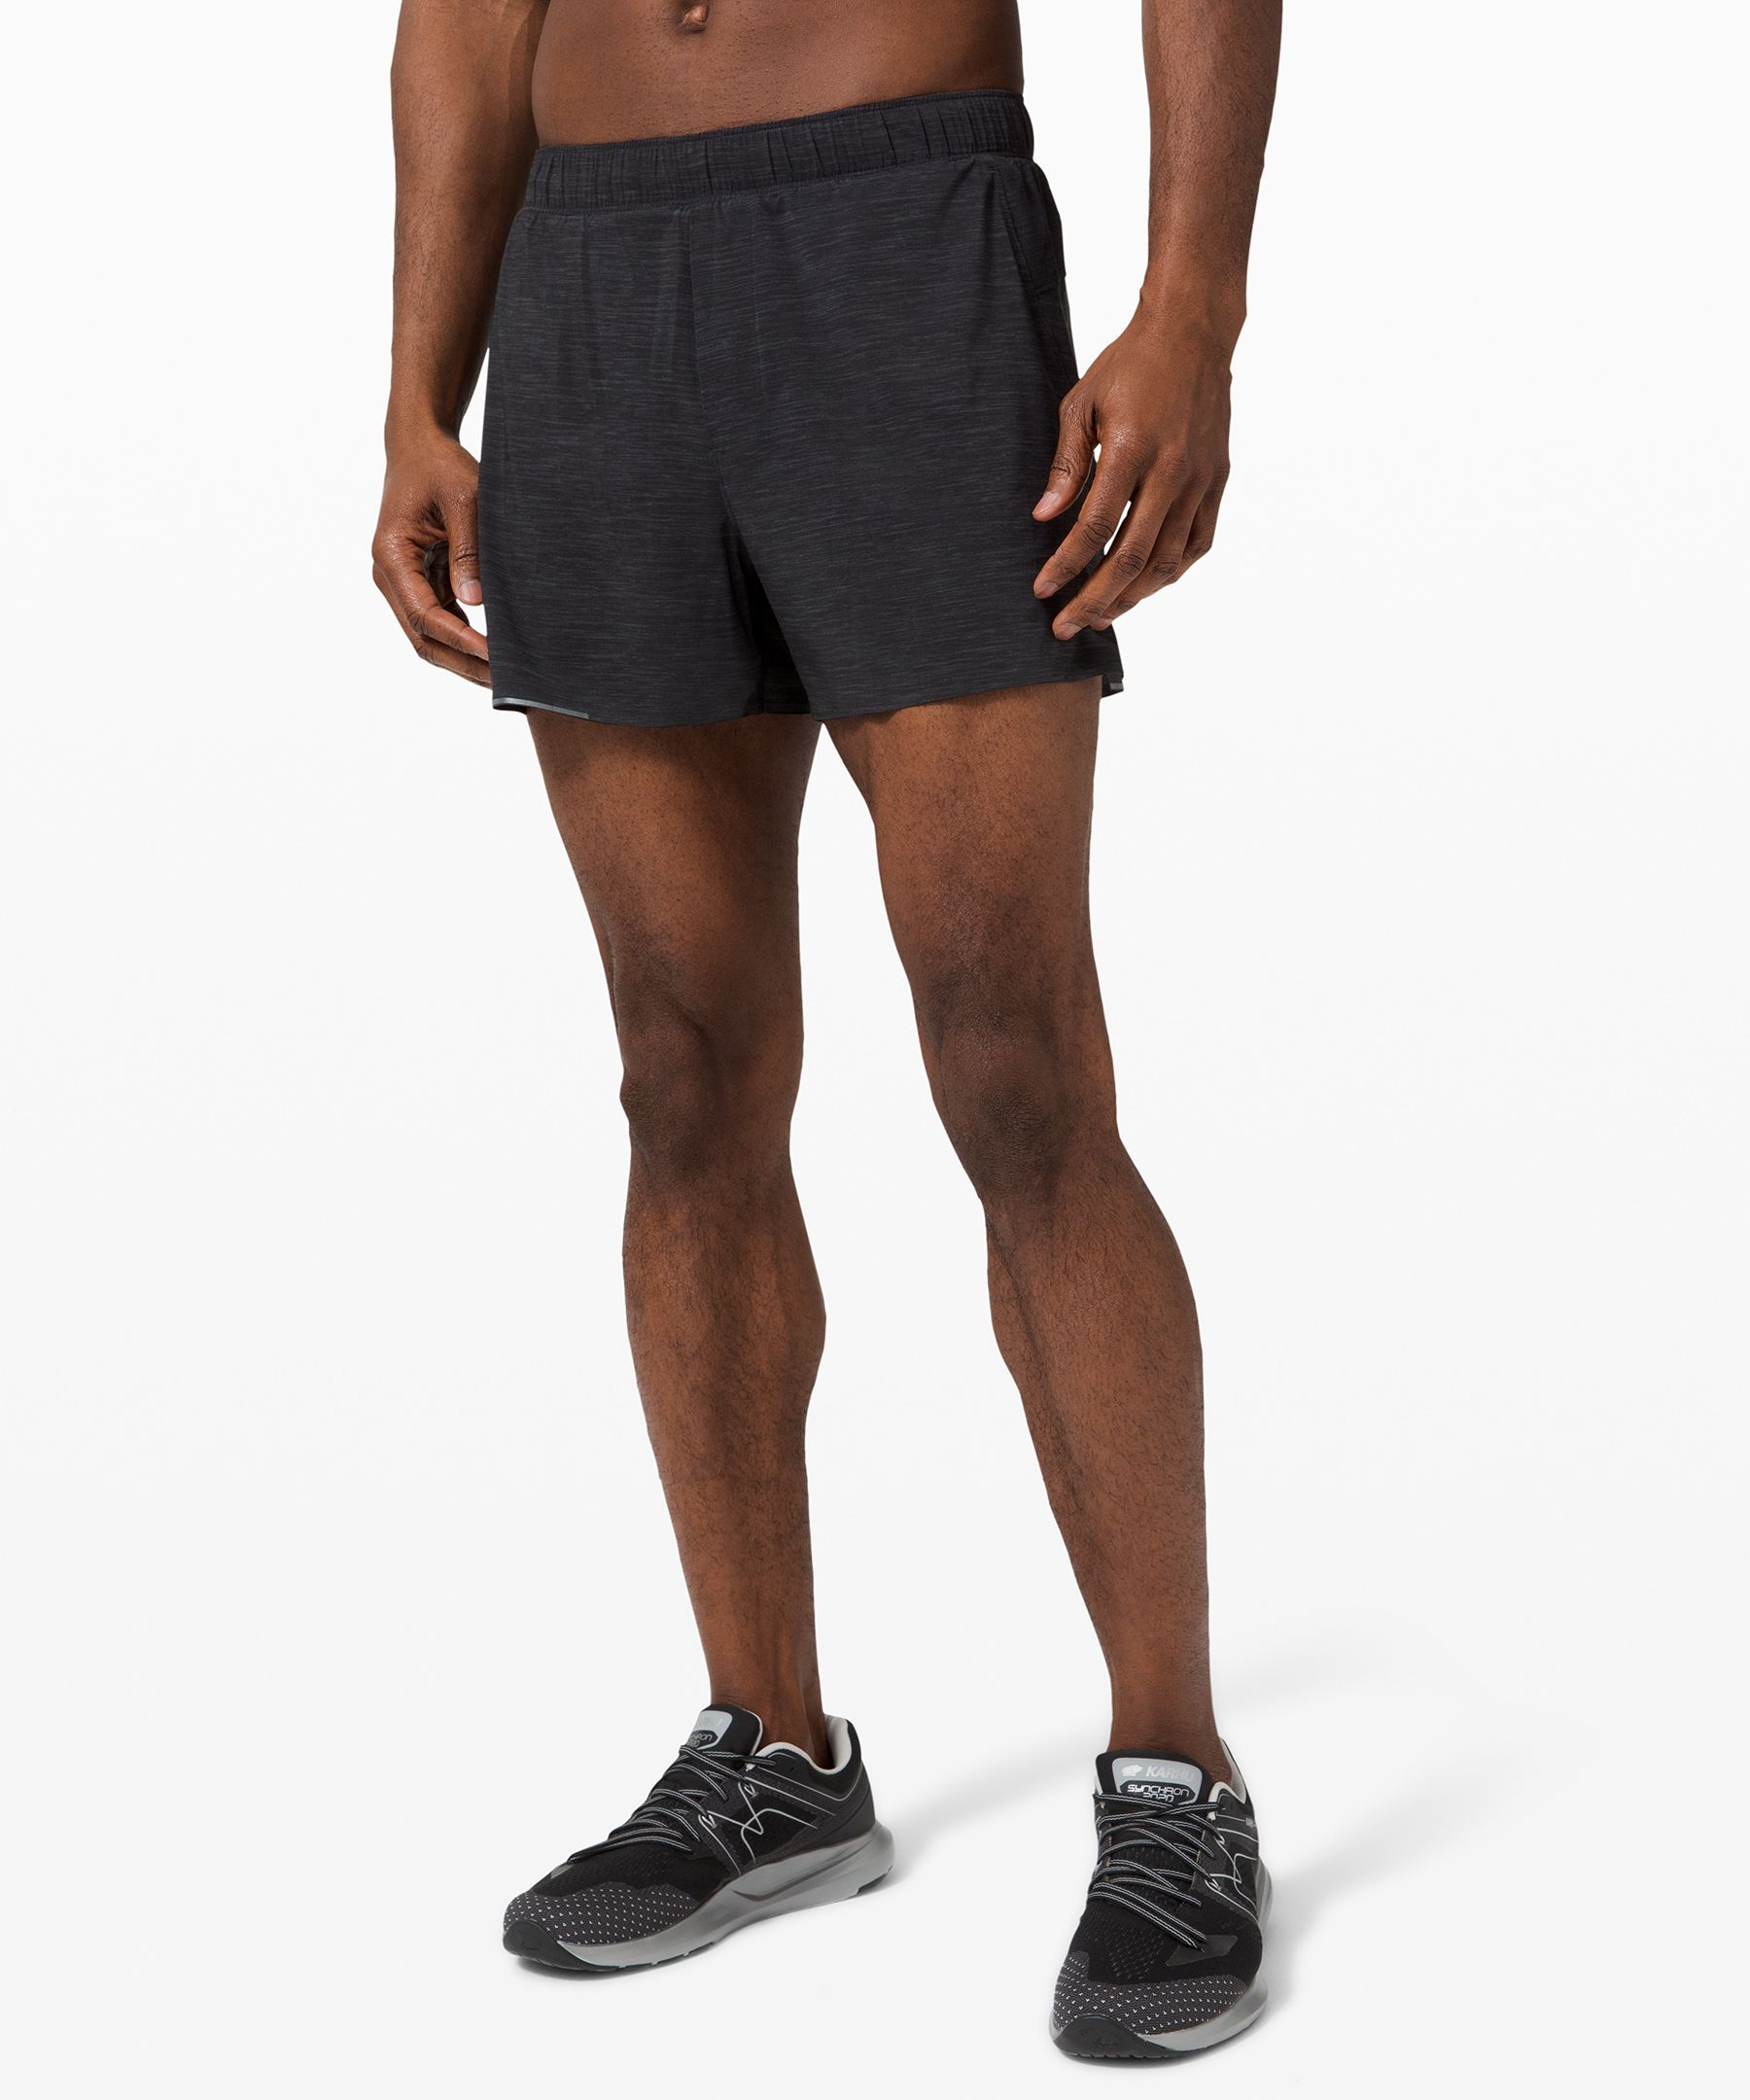 Run without limits in these  super lightweight,  distraction-free shorts that  keep your focus on your stride  mile after mile after mile.